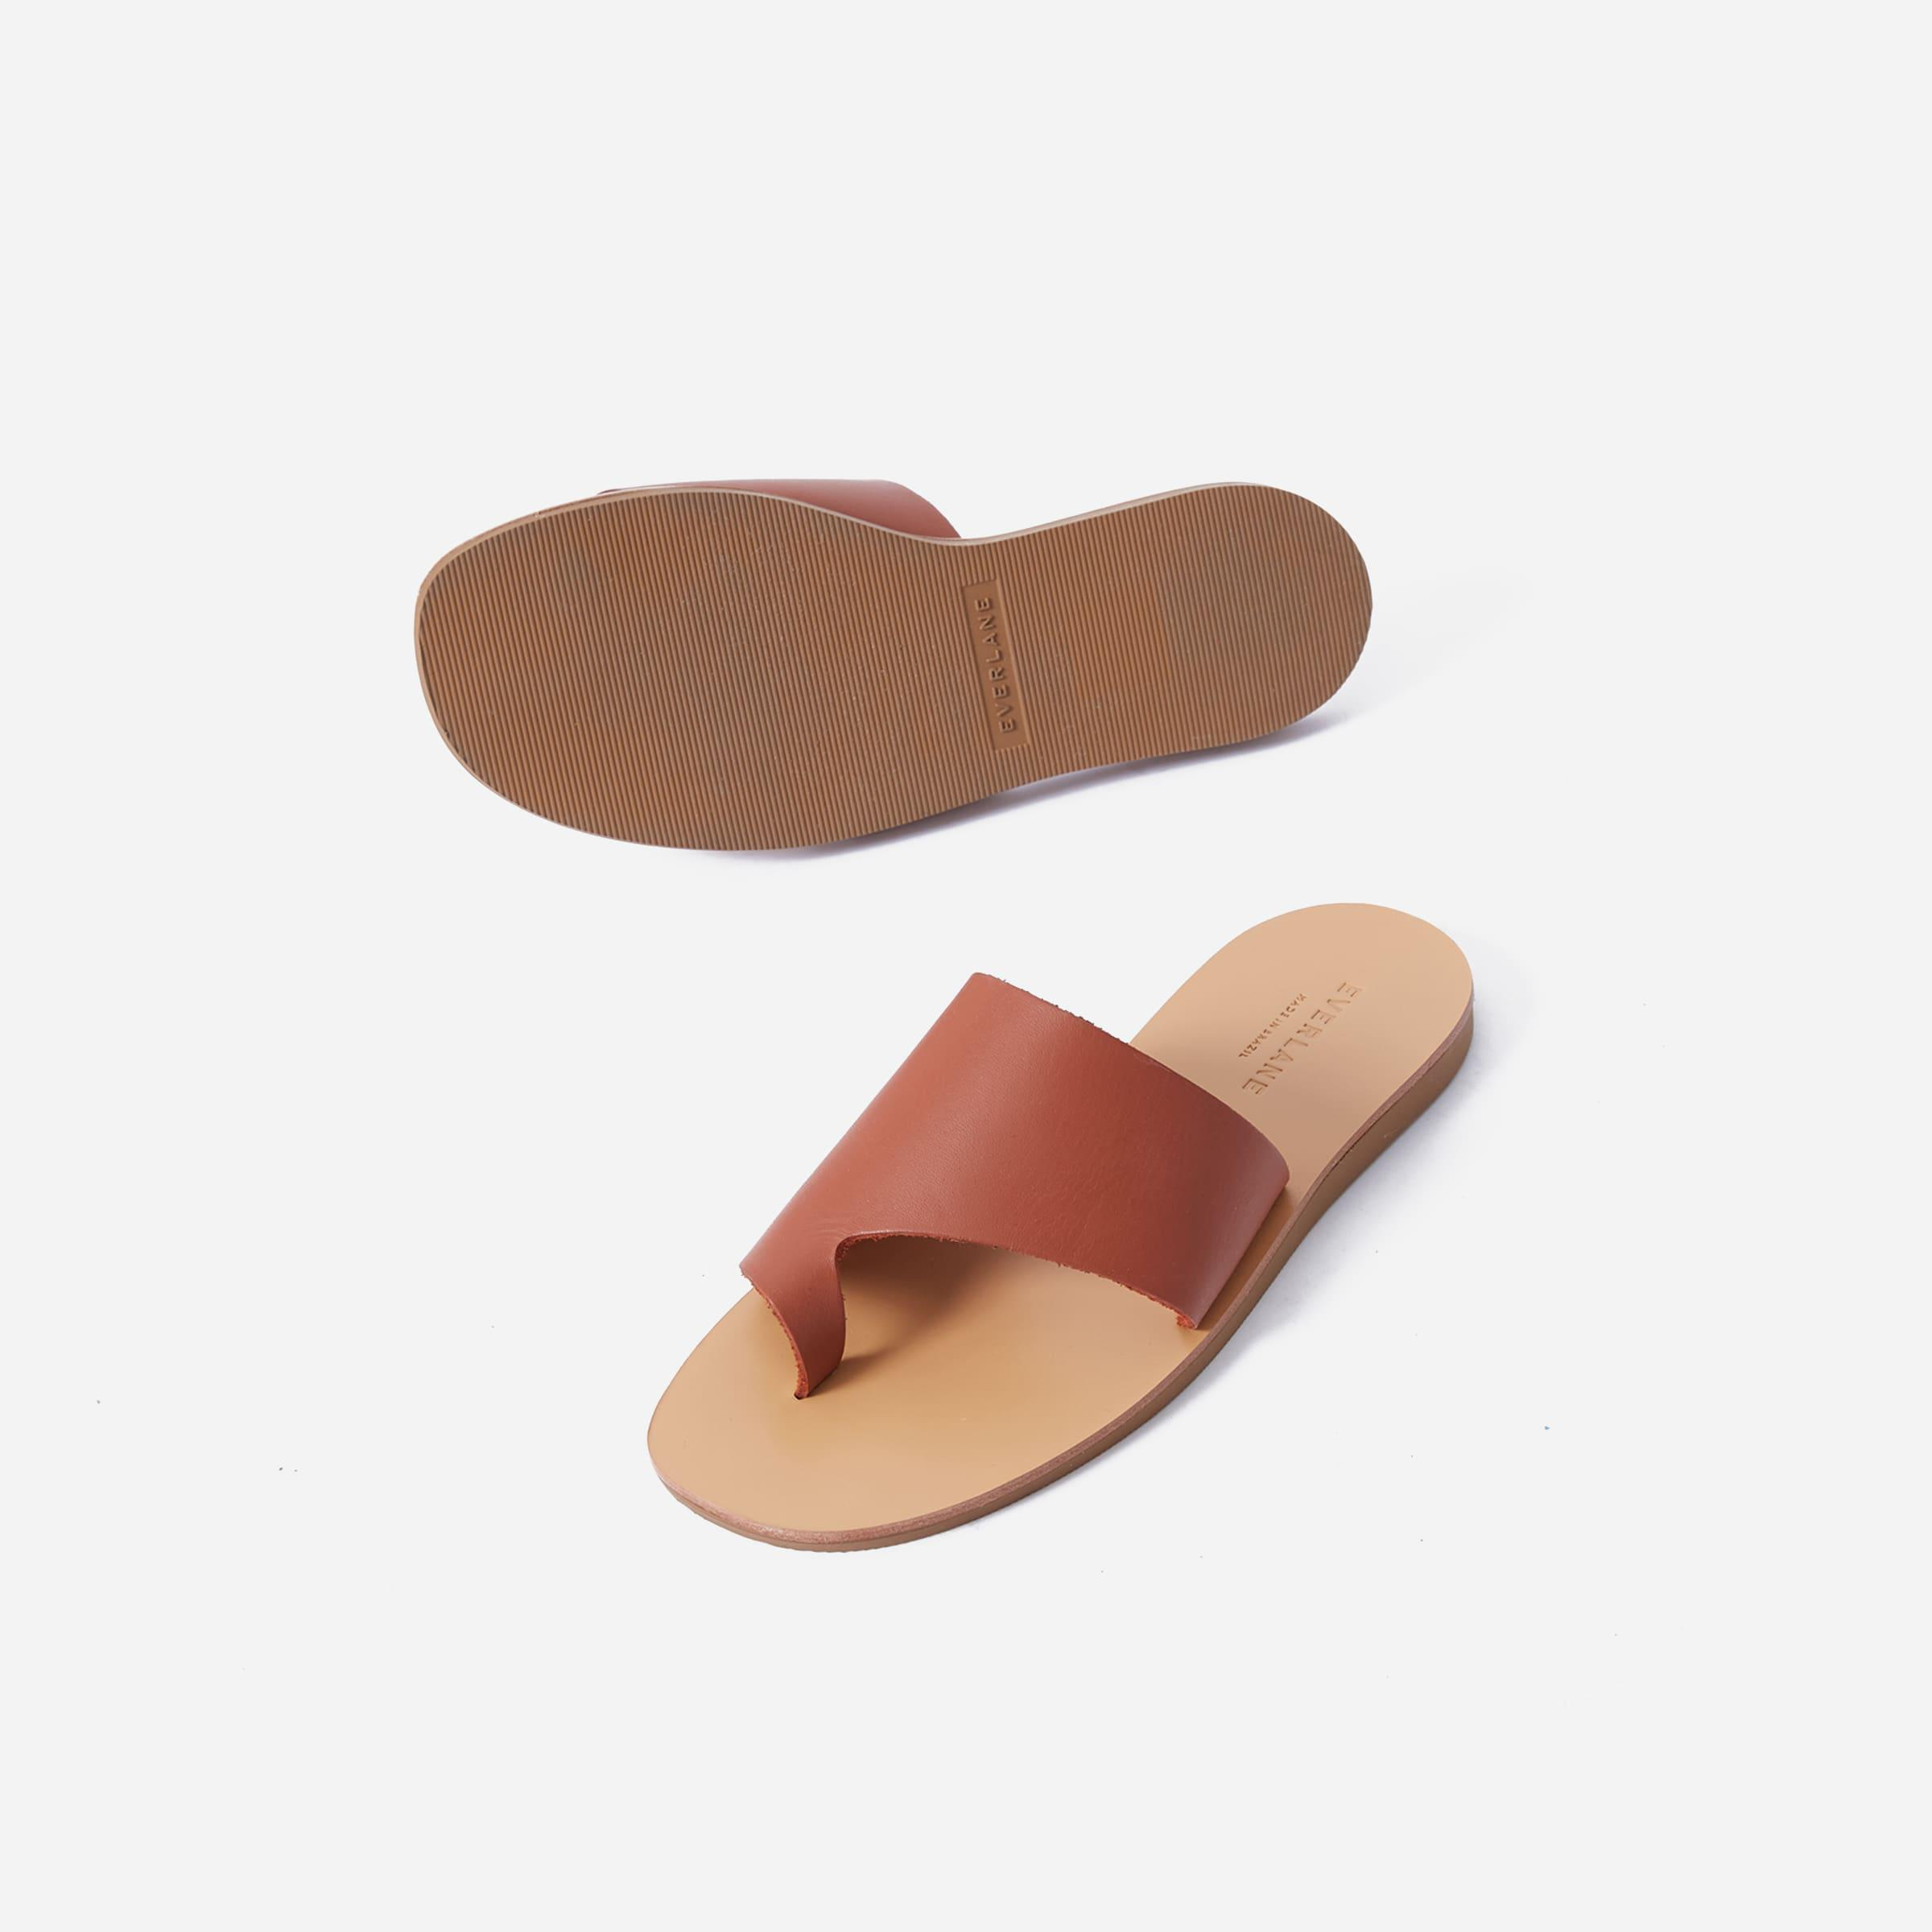 The Day Toe-Post Sandal 2